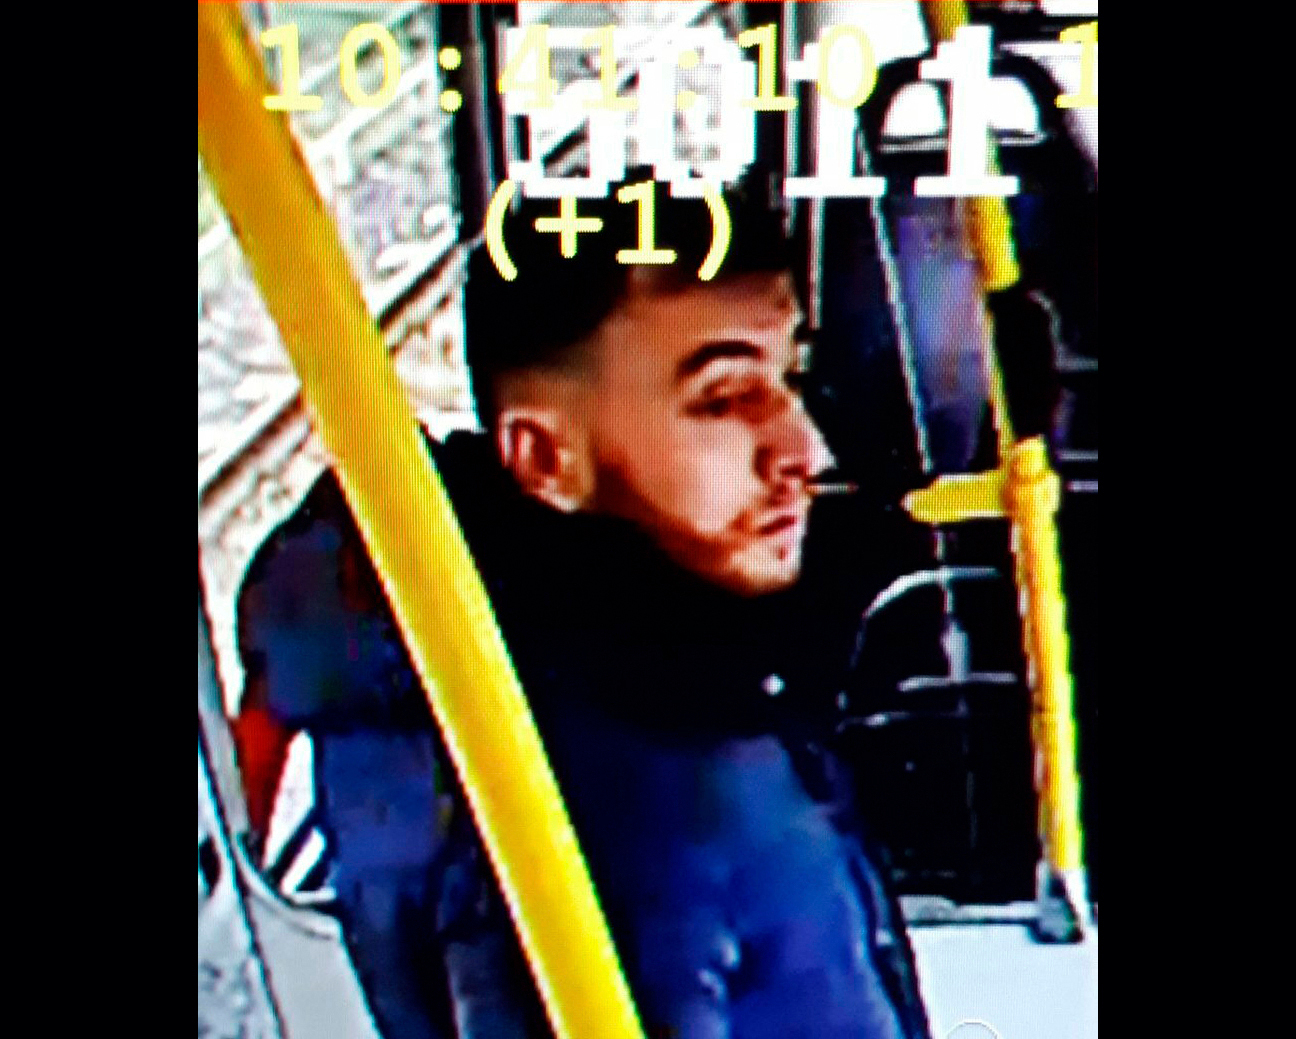 Dutch shootings: Search for motive after Turkish-born suspect arrested in tram attack